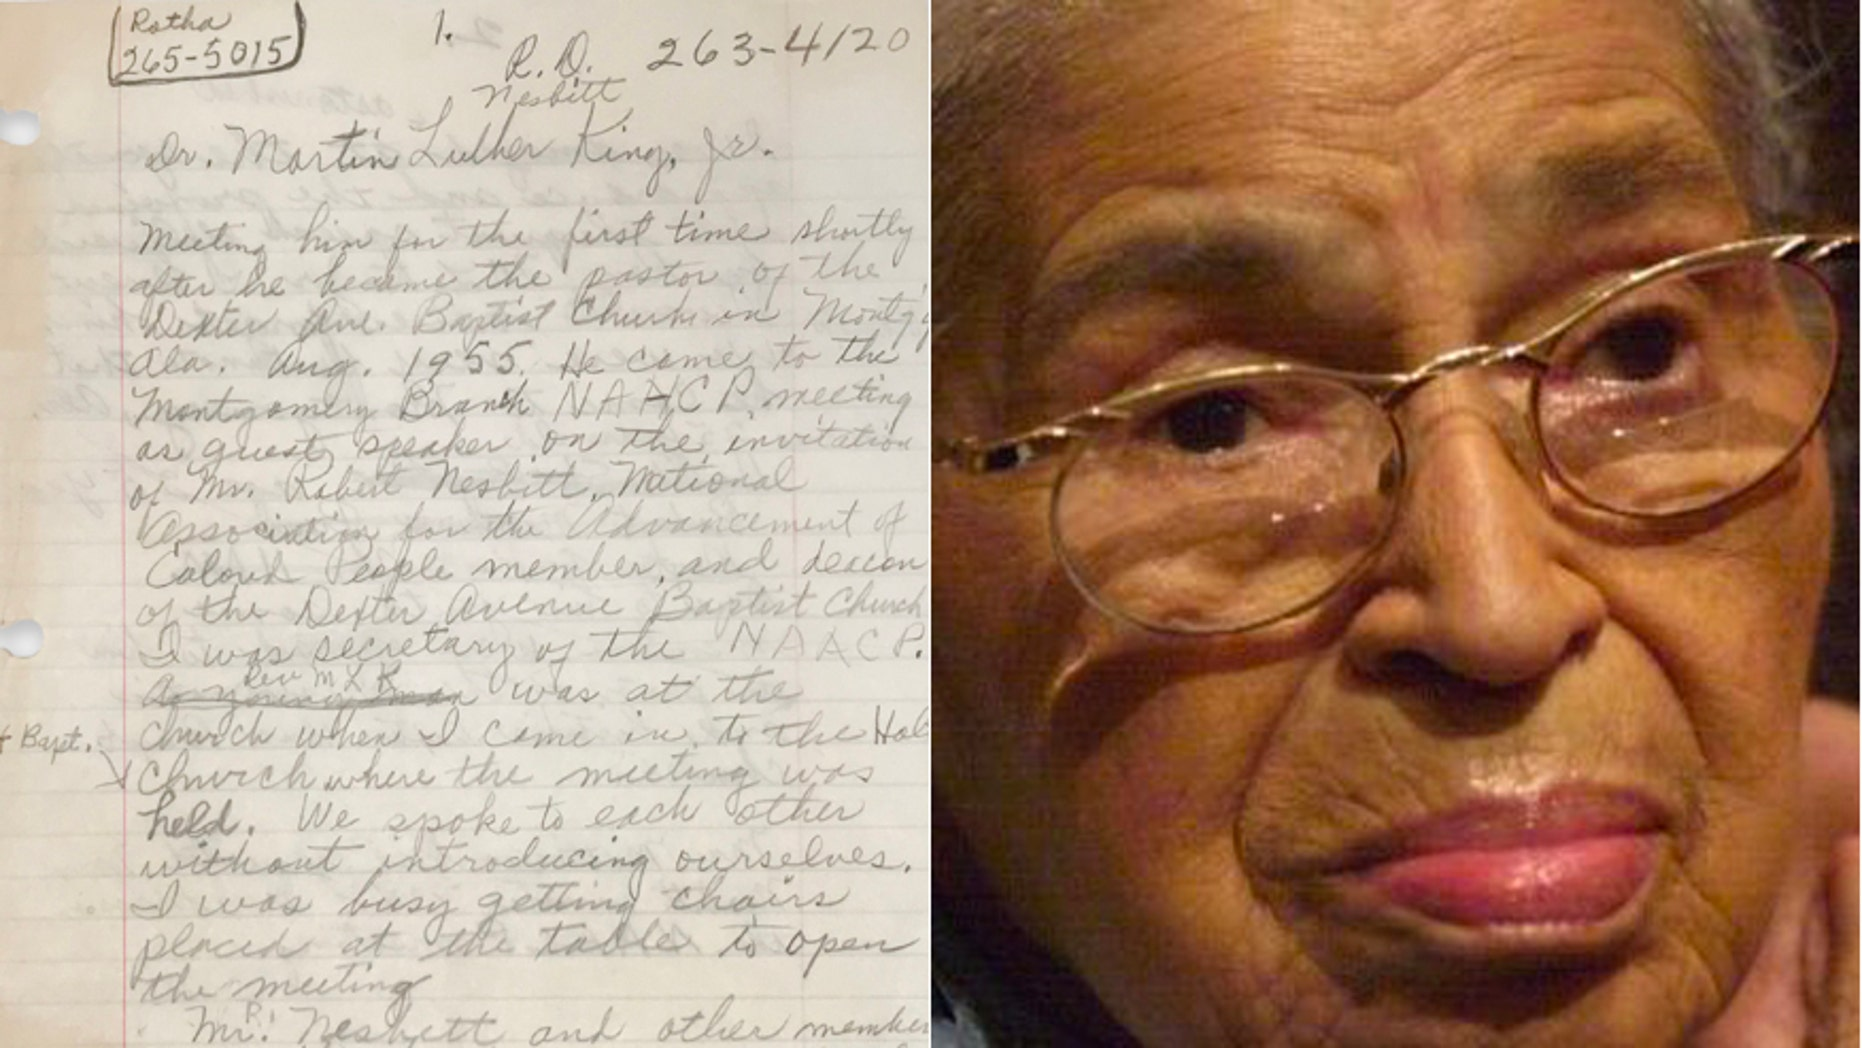 Rosa Parks' letter to Dr. Martin Luther King Jr./file photo of Rosa Parks (Guernsey's Auction House/AP)